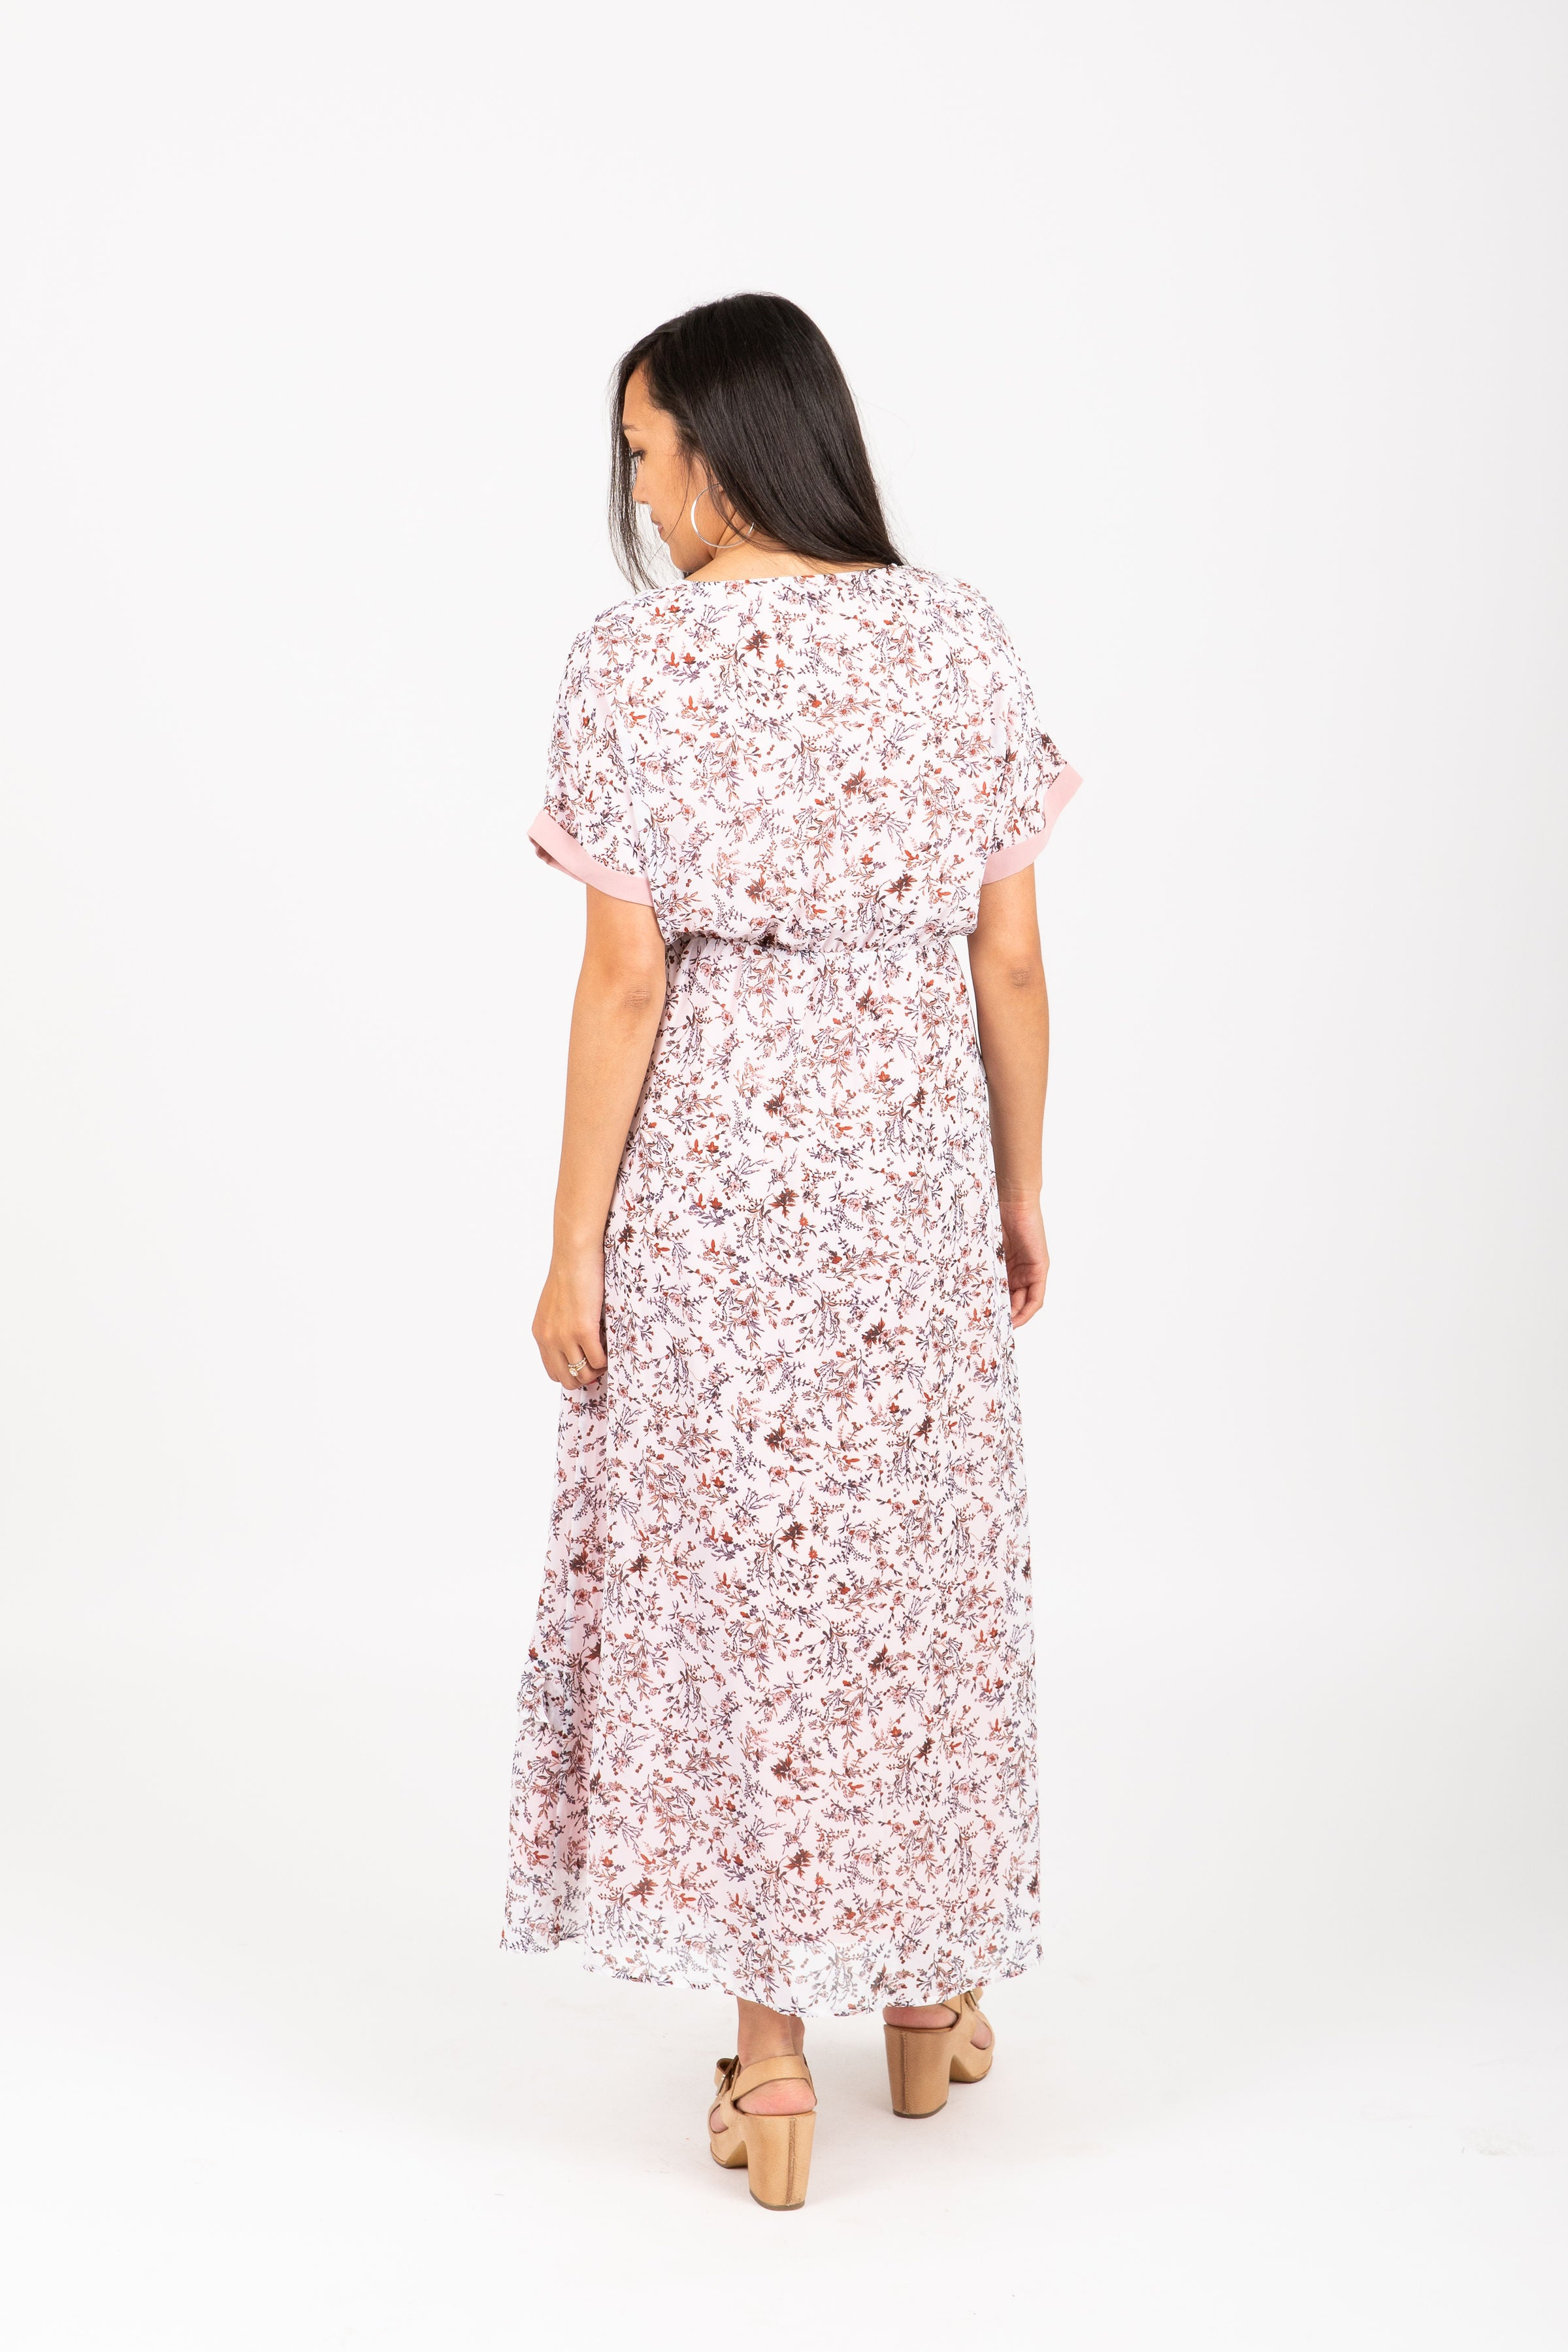 Piper & Scoot: The Dusk Floral Tiered Dress in Blush